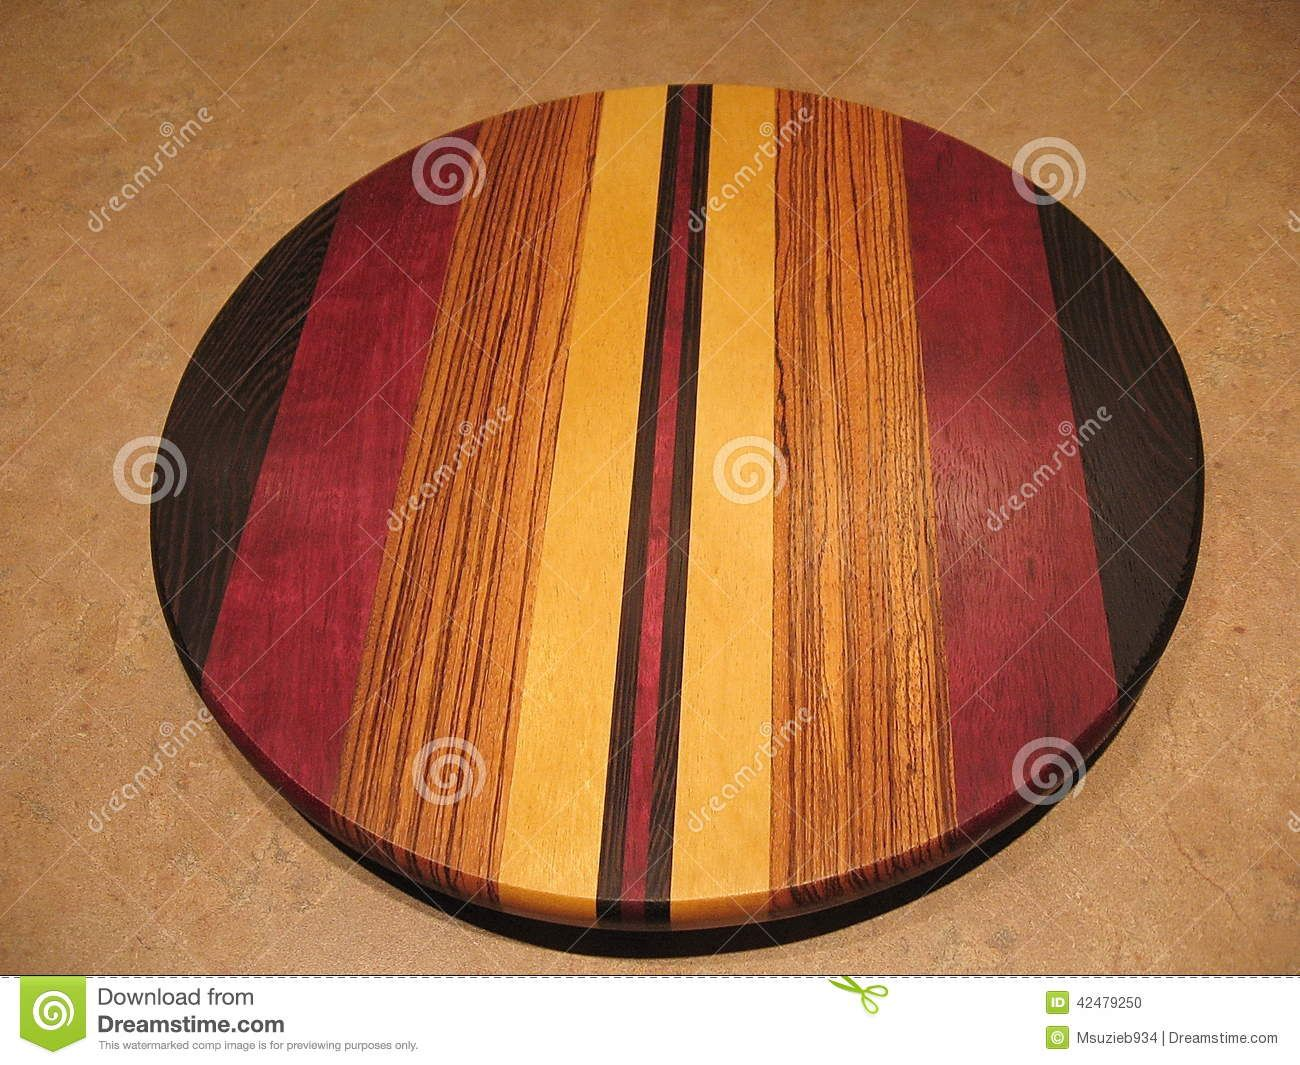 Wood lazy susans for tables - Tabletop Lazy Susan Turntable Round Tabletop Lazy Susan Made Of Four Species